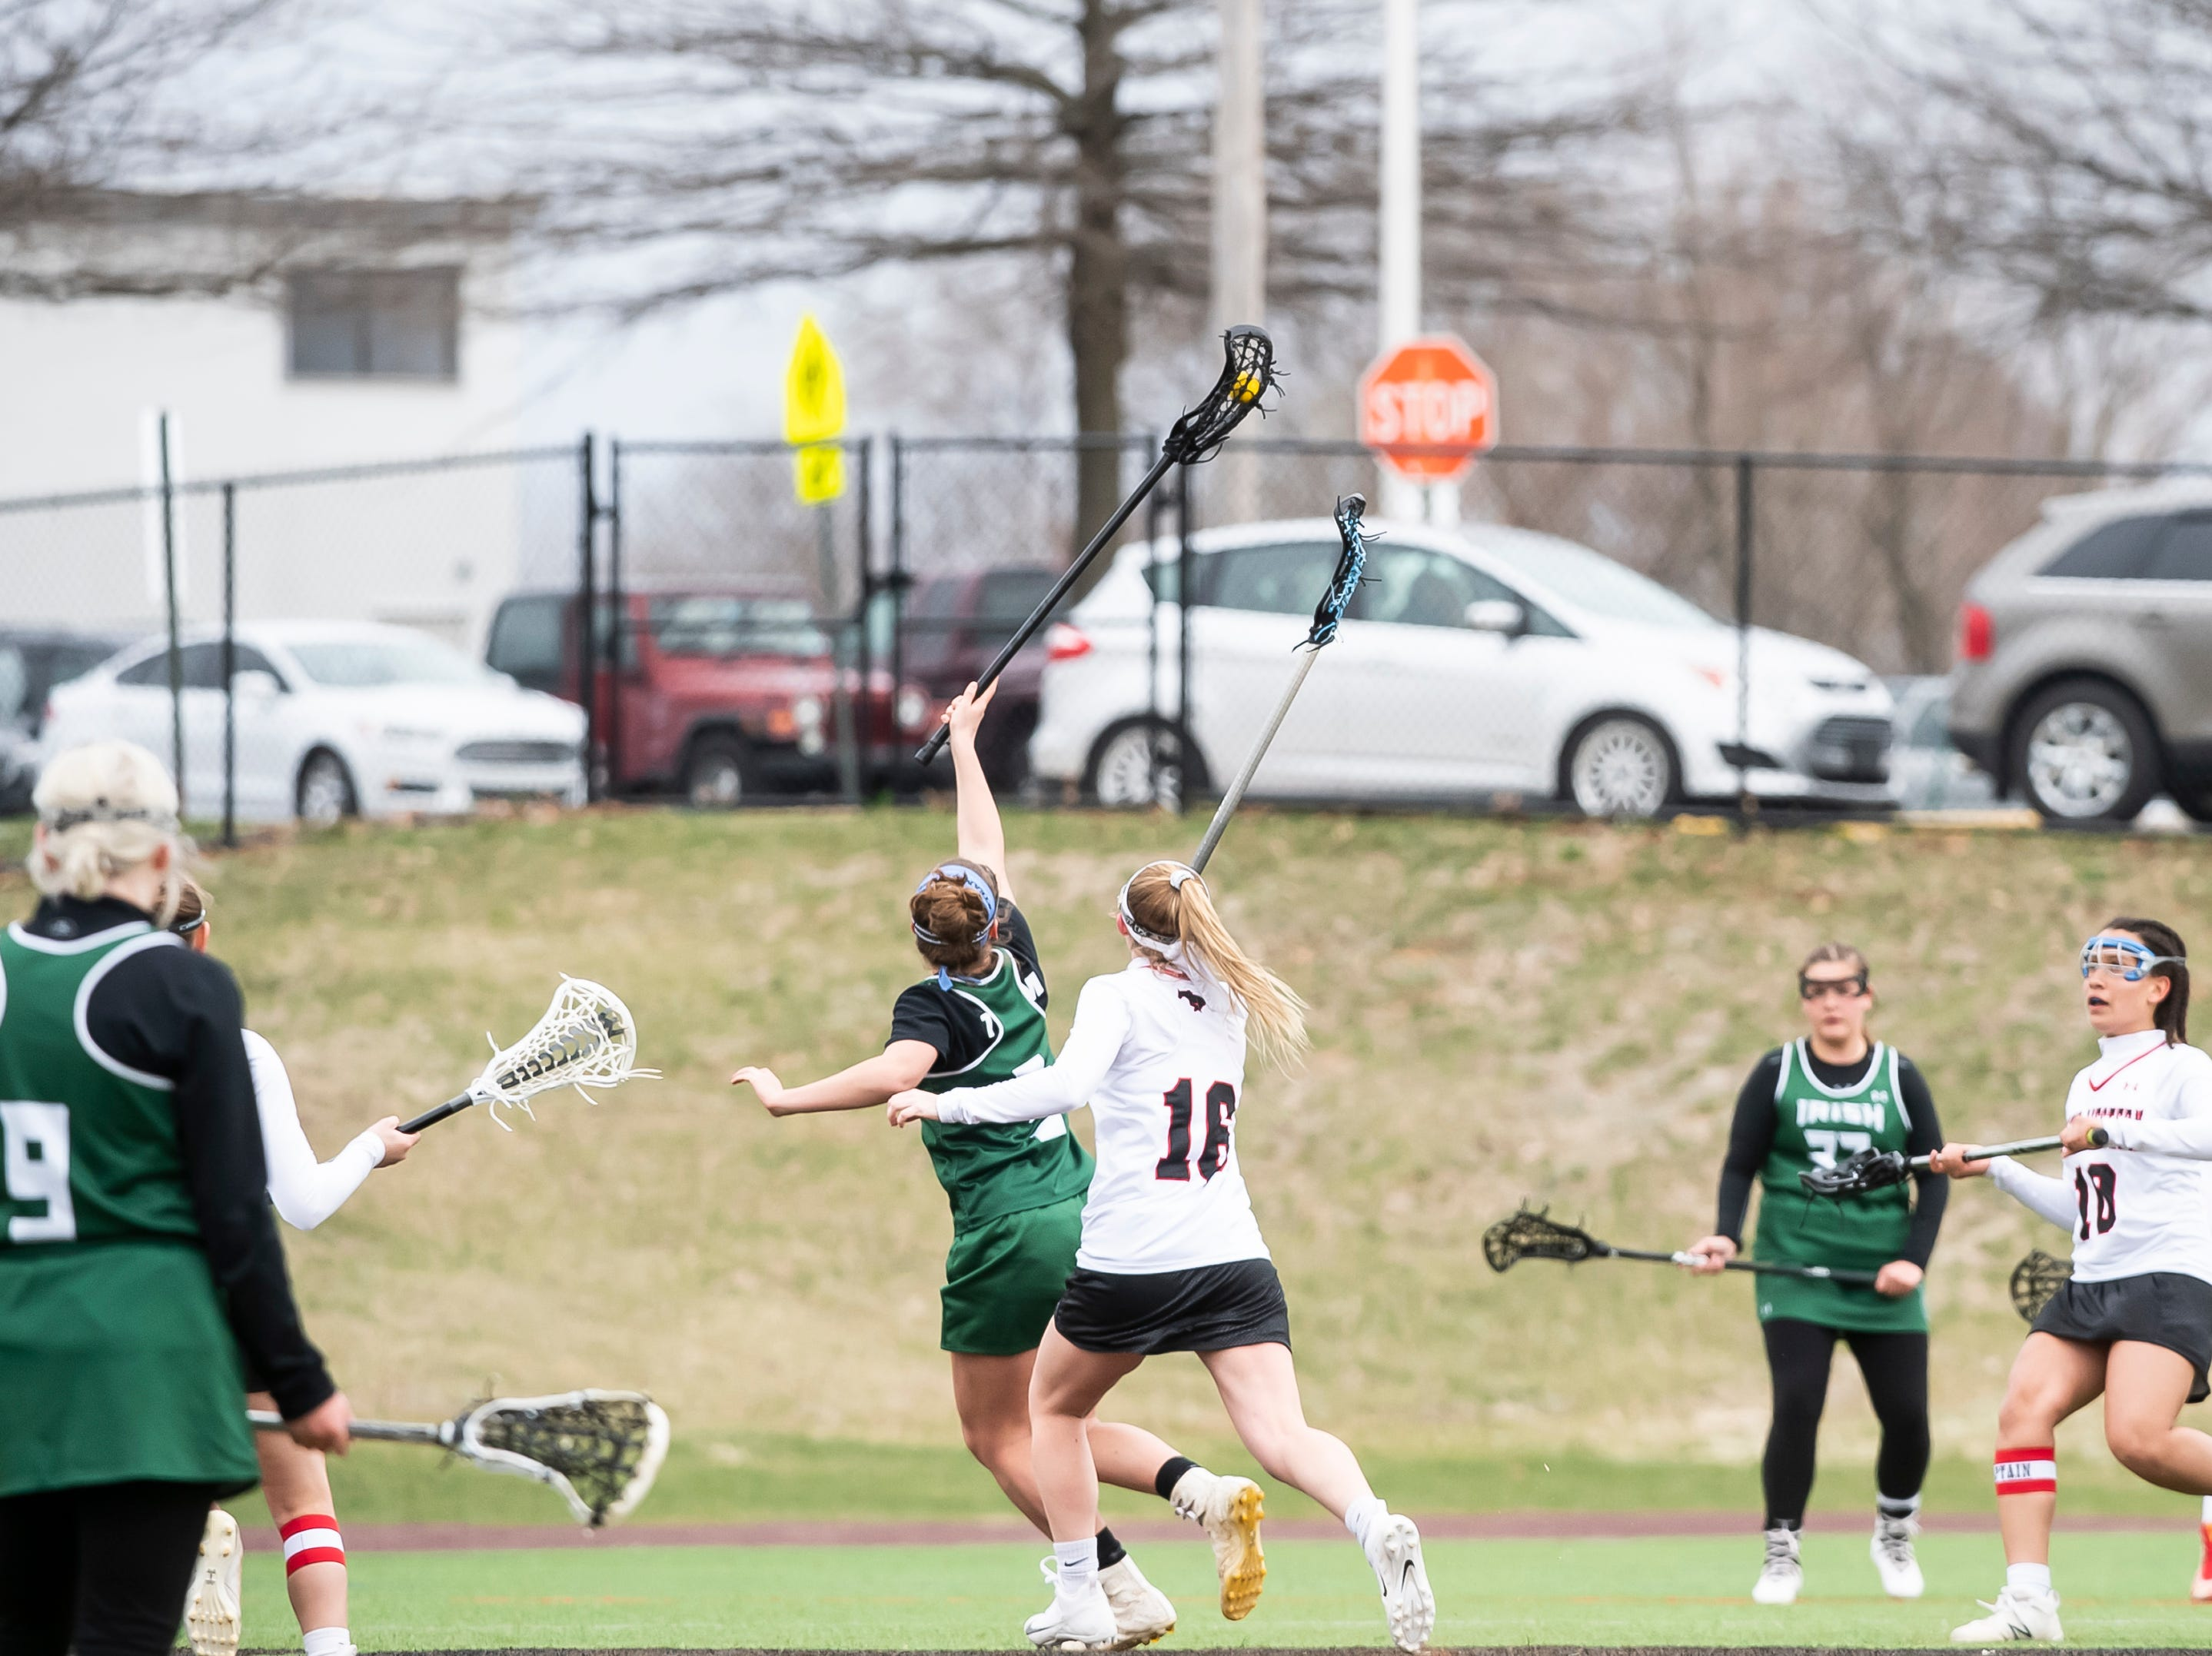 York Catholic's Grace Doyle wins a face-off against South Western's Molly Watts during a YAIAA lacrosse game in Hanover on Tuesday, April 2, 2019. York Catholic won 19-7 and improved to 5-0.